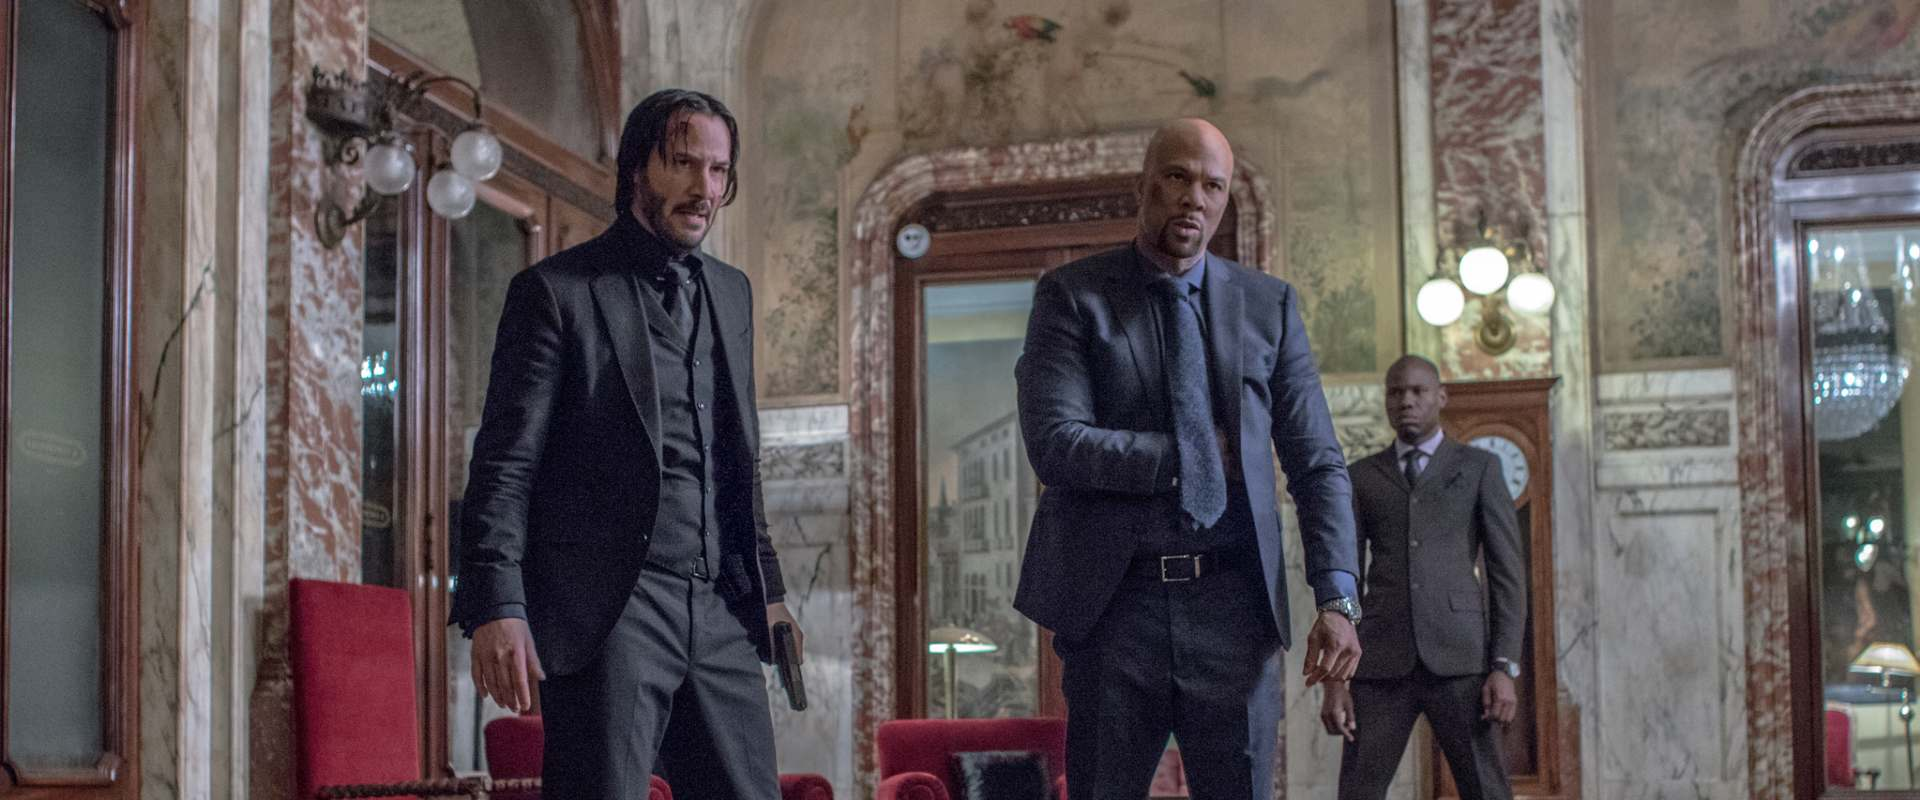 Watch John Wick Chapter 2 On Netflix Today Netflixmoviescom